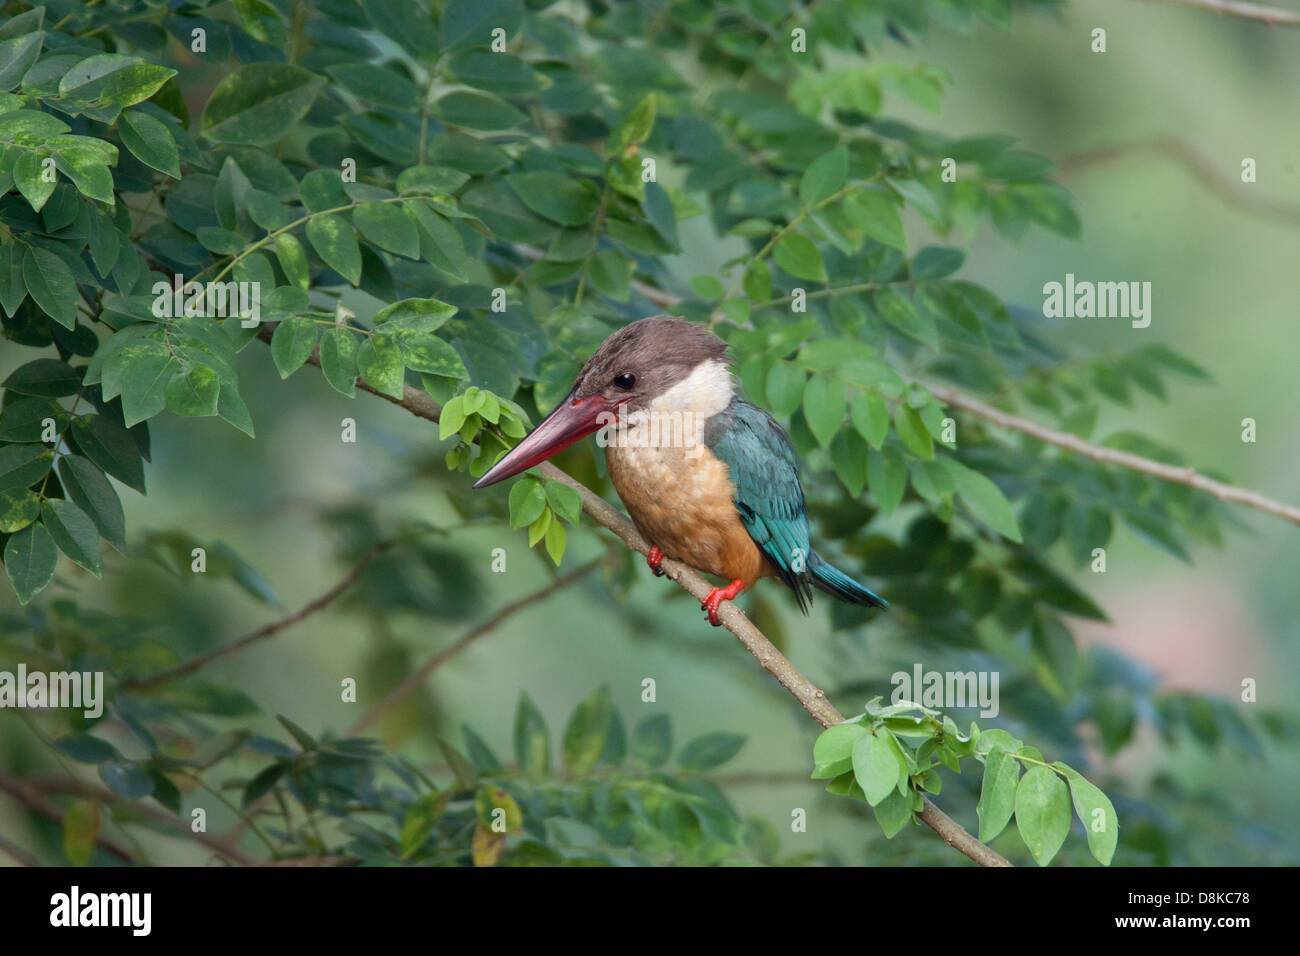 The Stork billed Kingfisher in the monsoons is found inland in the state of Goa, one of the biggest kingfishers - Stock Image